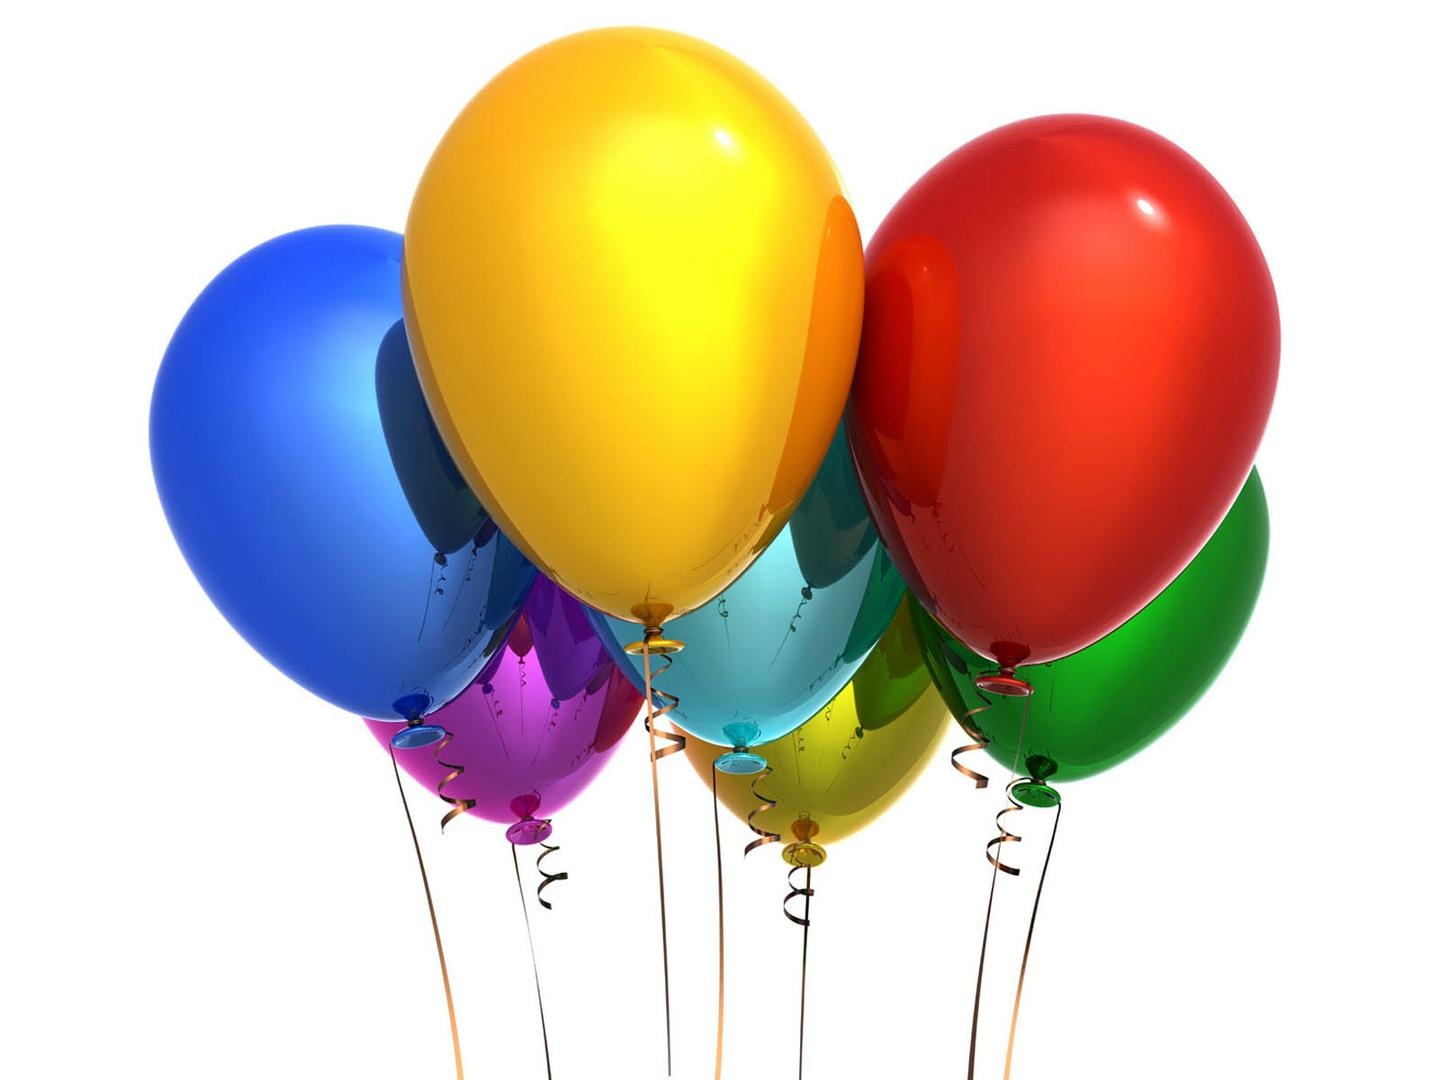 Balloons_Wallpapers_1_1